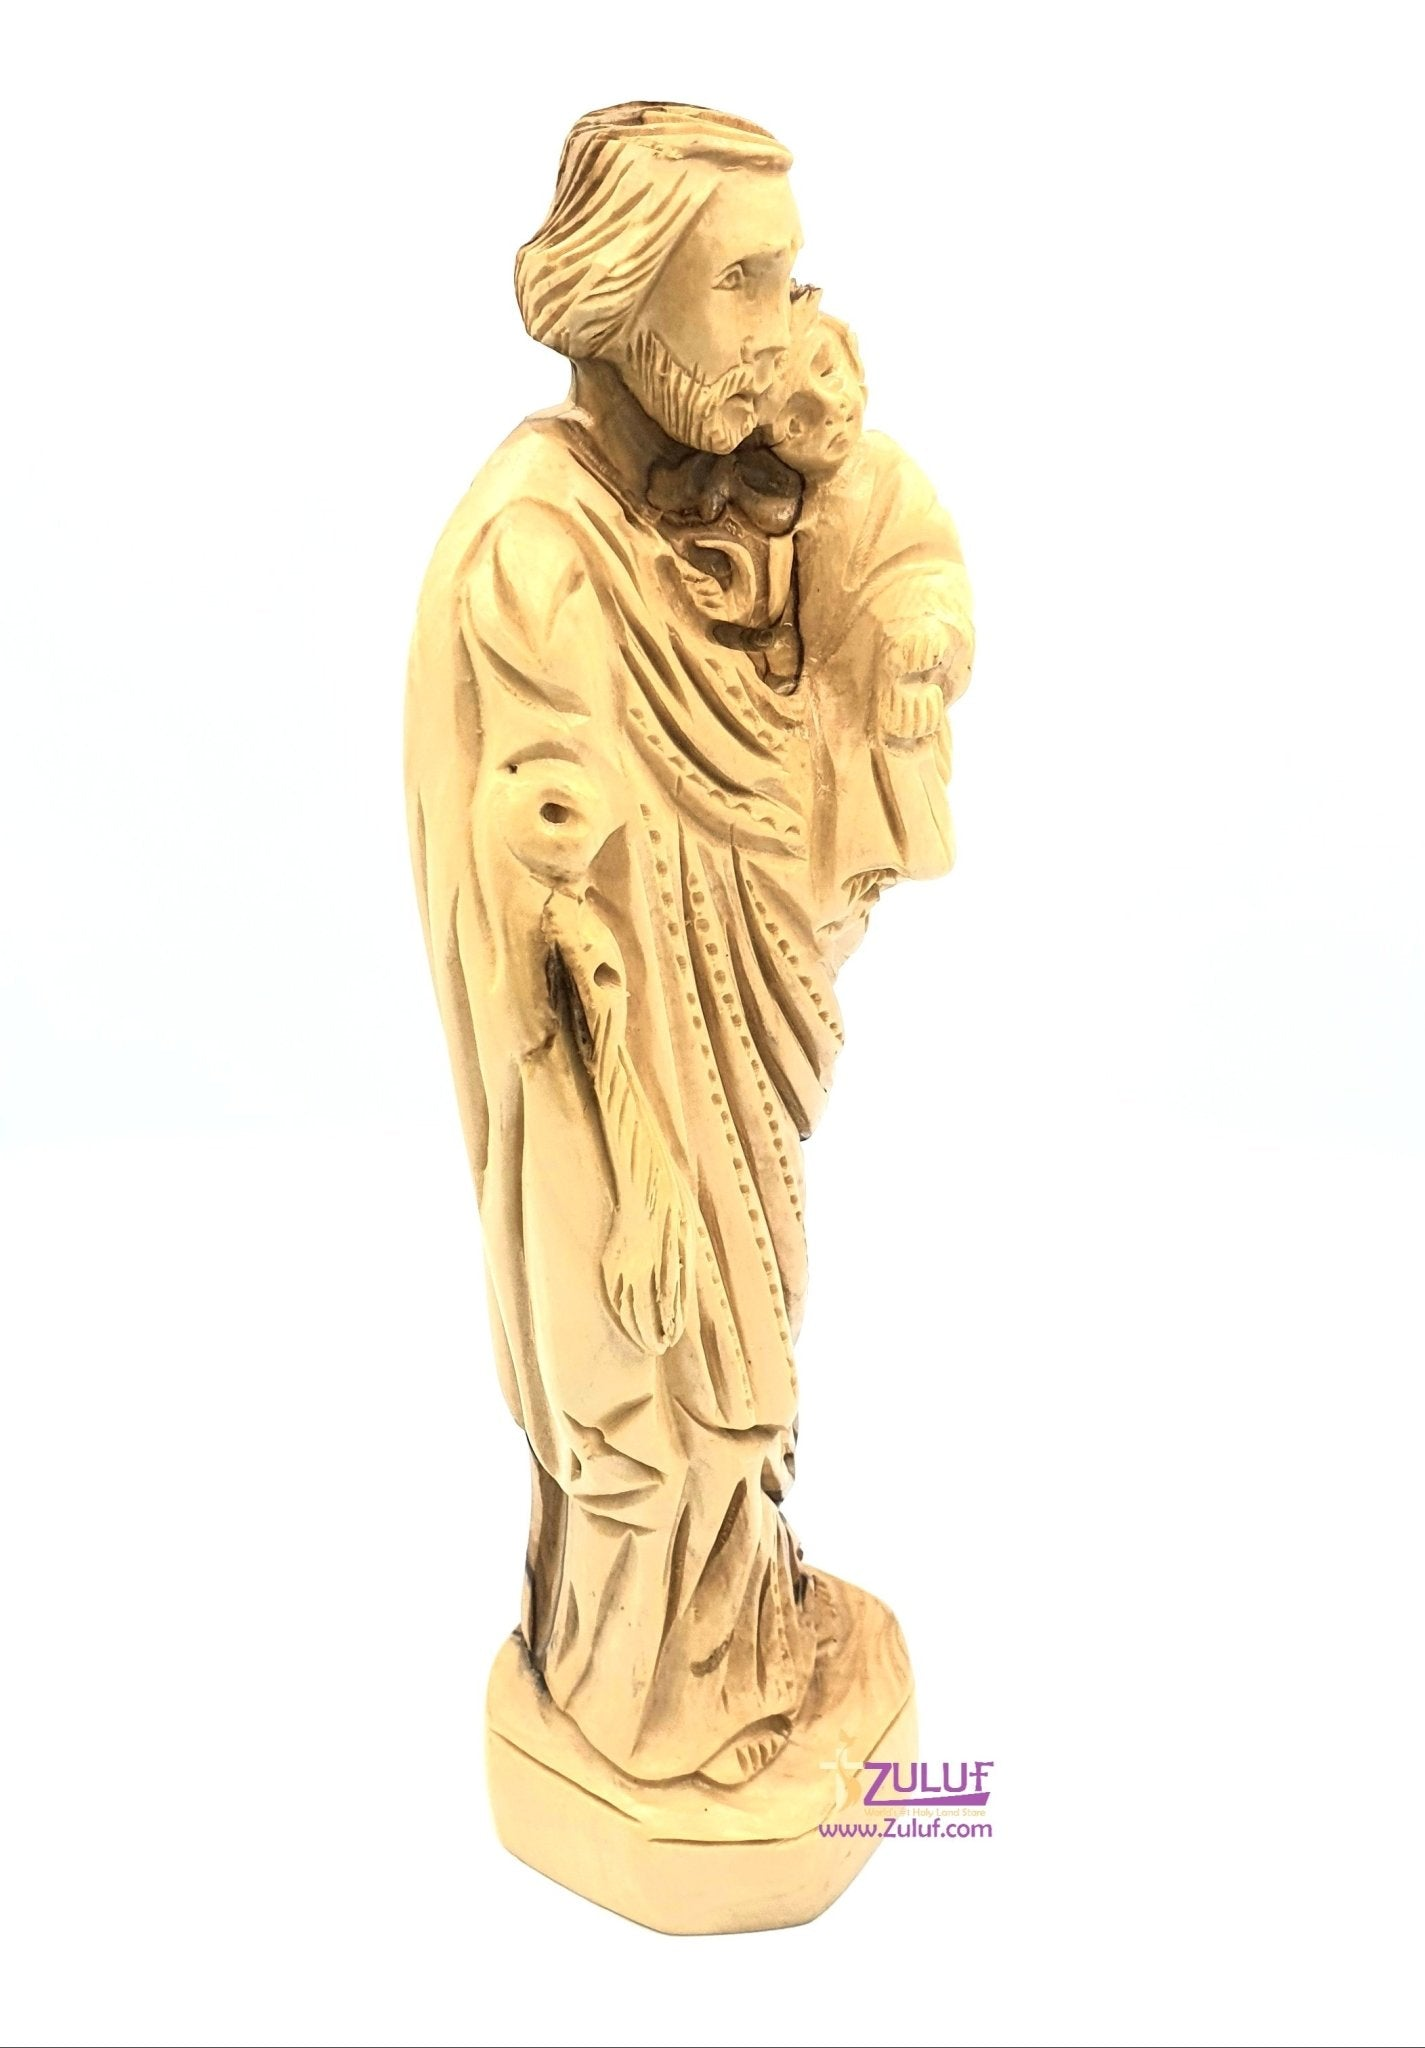 Olive wood Hand Made Joseph Statue Carrying Baby Jesus FLG047 - Zuluf